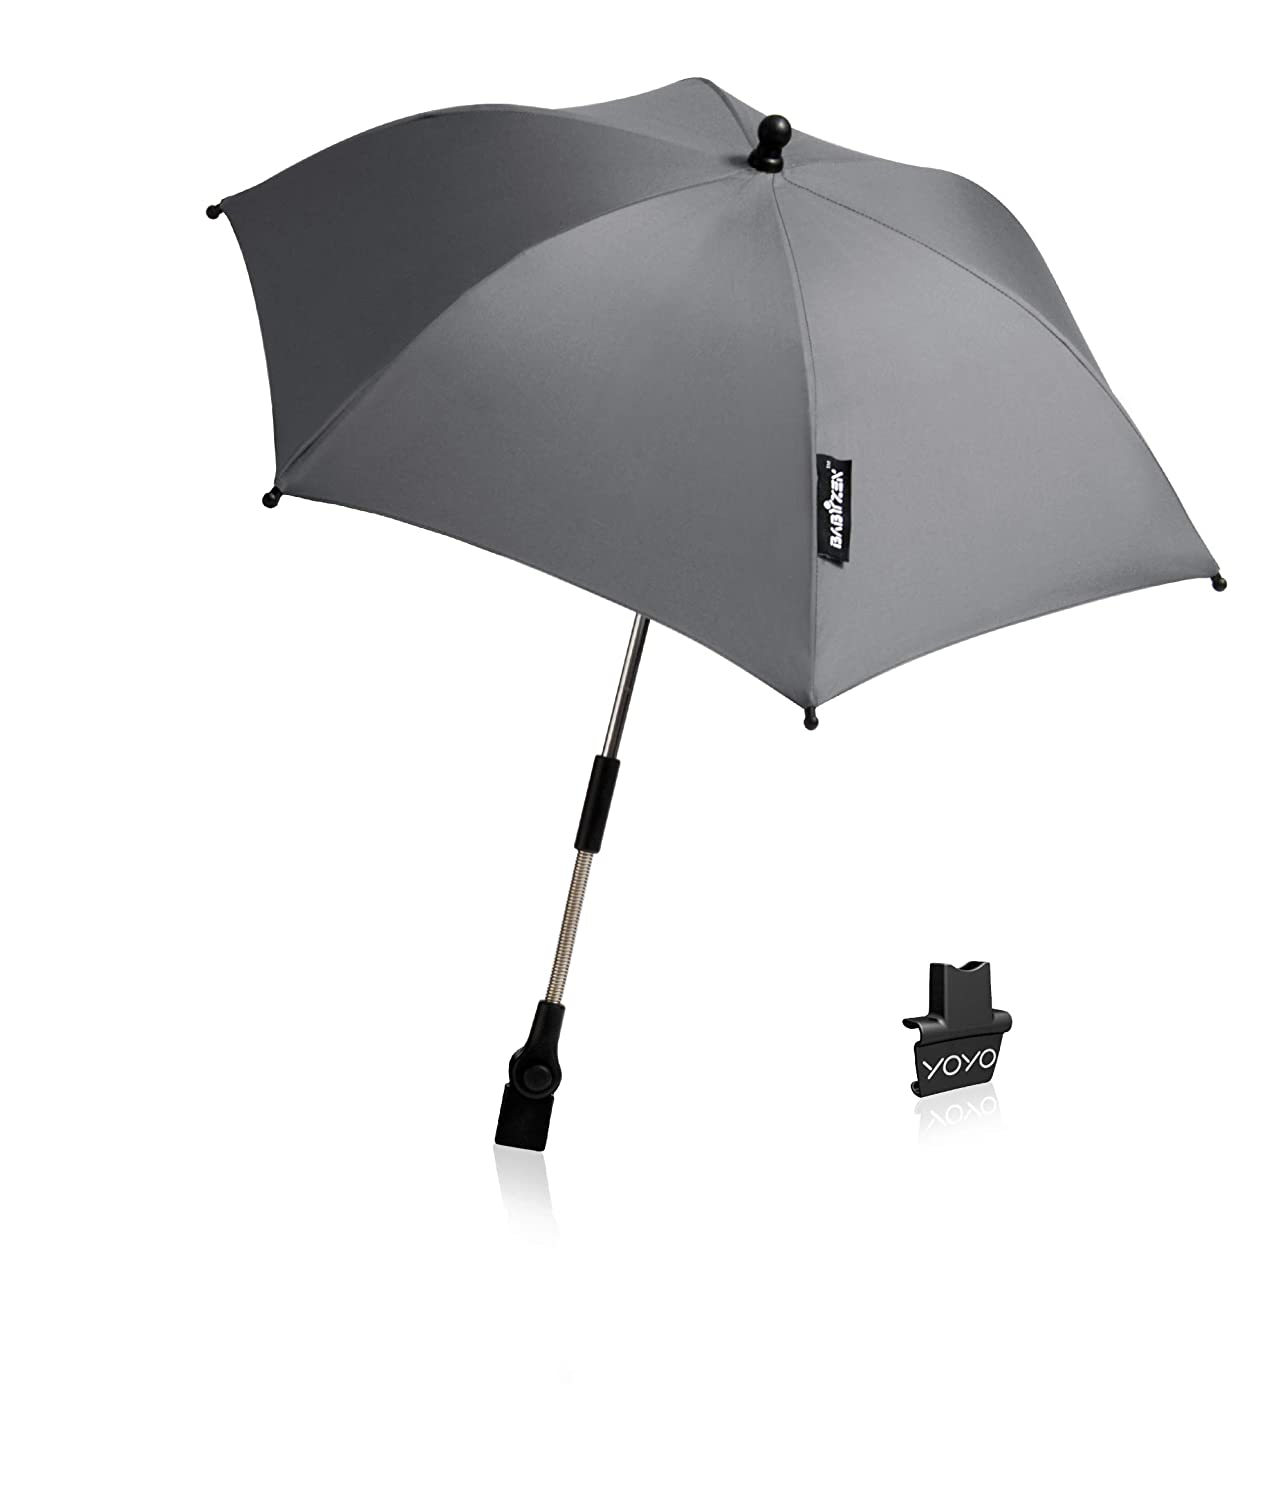 BABYZEN - Parasol para cochecito, color gris Whitestep Ltd BZ10211-01